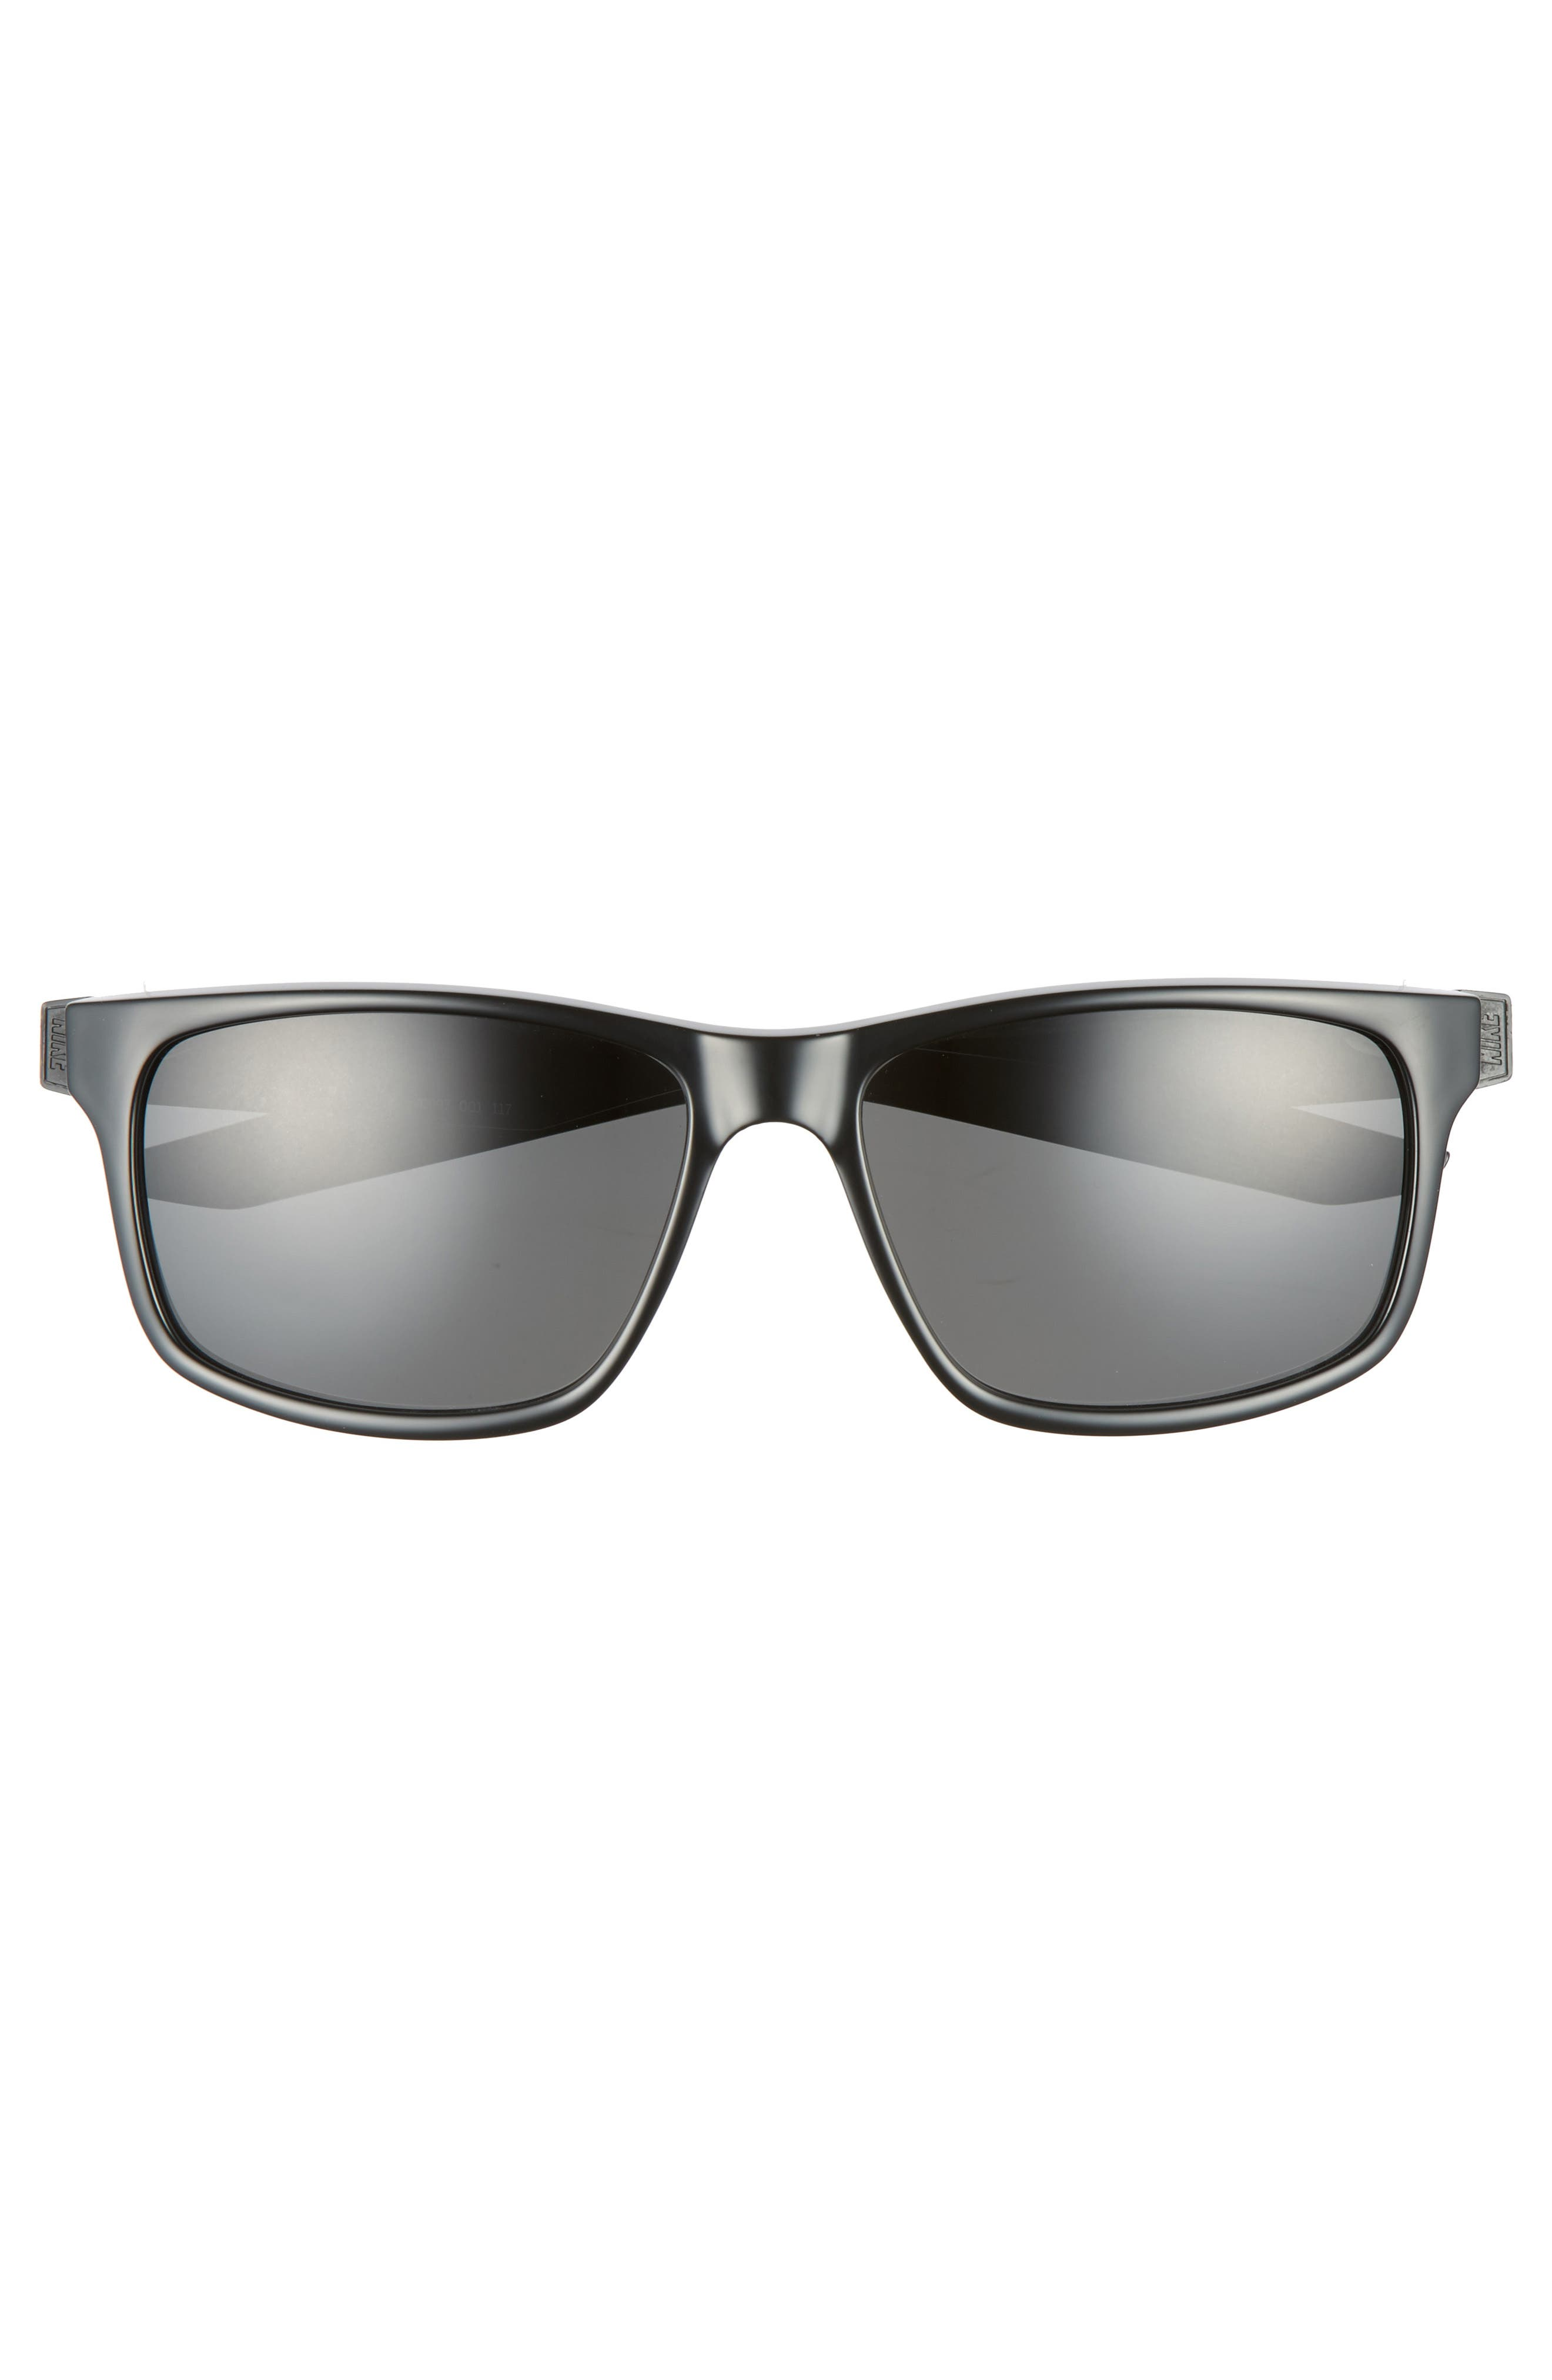 Essential Chaser 59mm Polarized Sunglasses,                             Alternate thumbnail 2, color,                             001